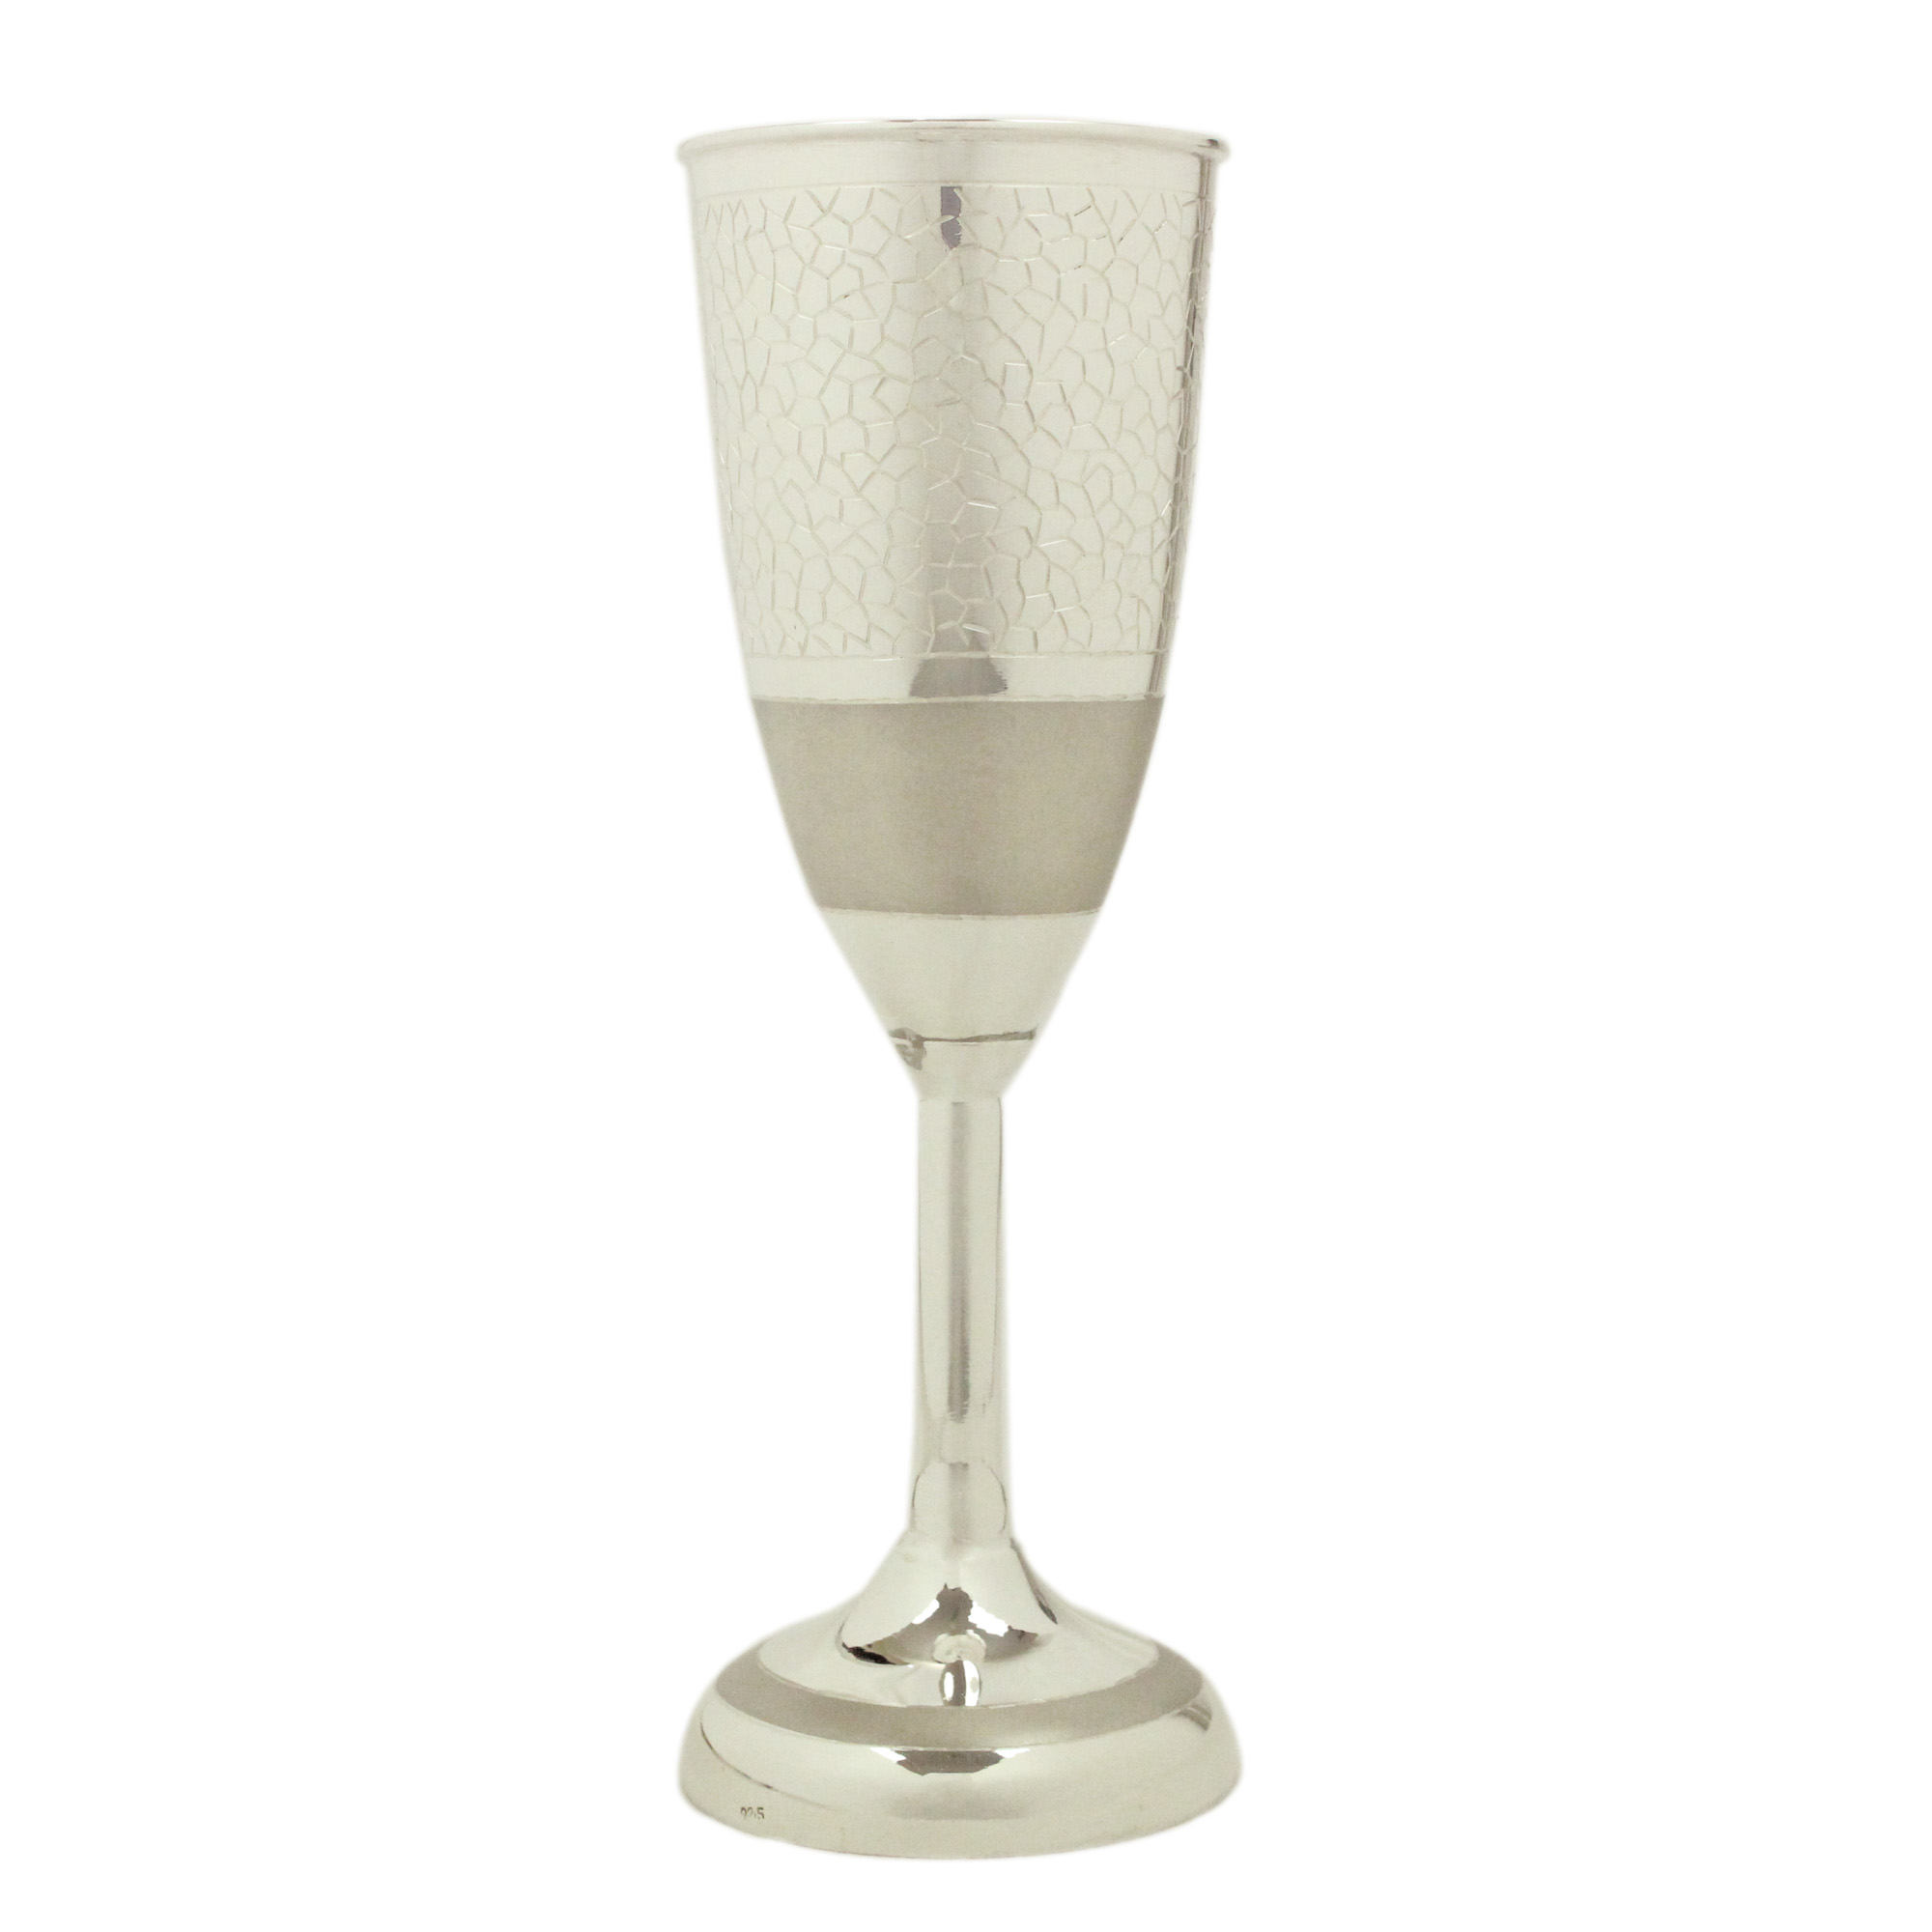 Wine Glass in Silver by Osasbazaar Main